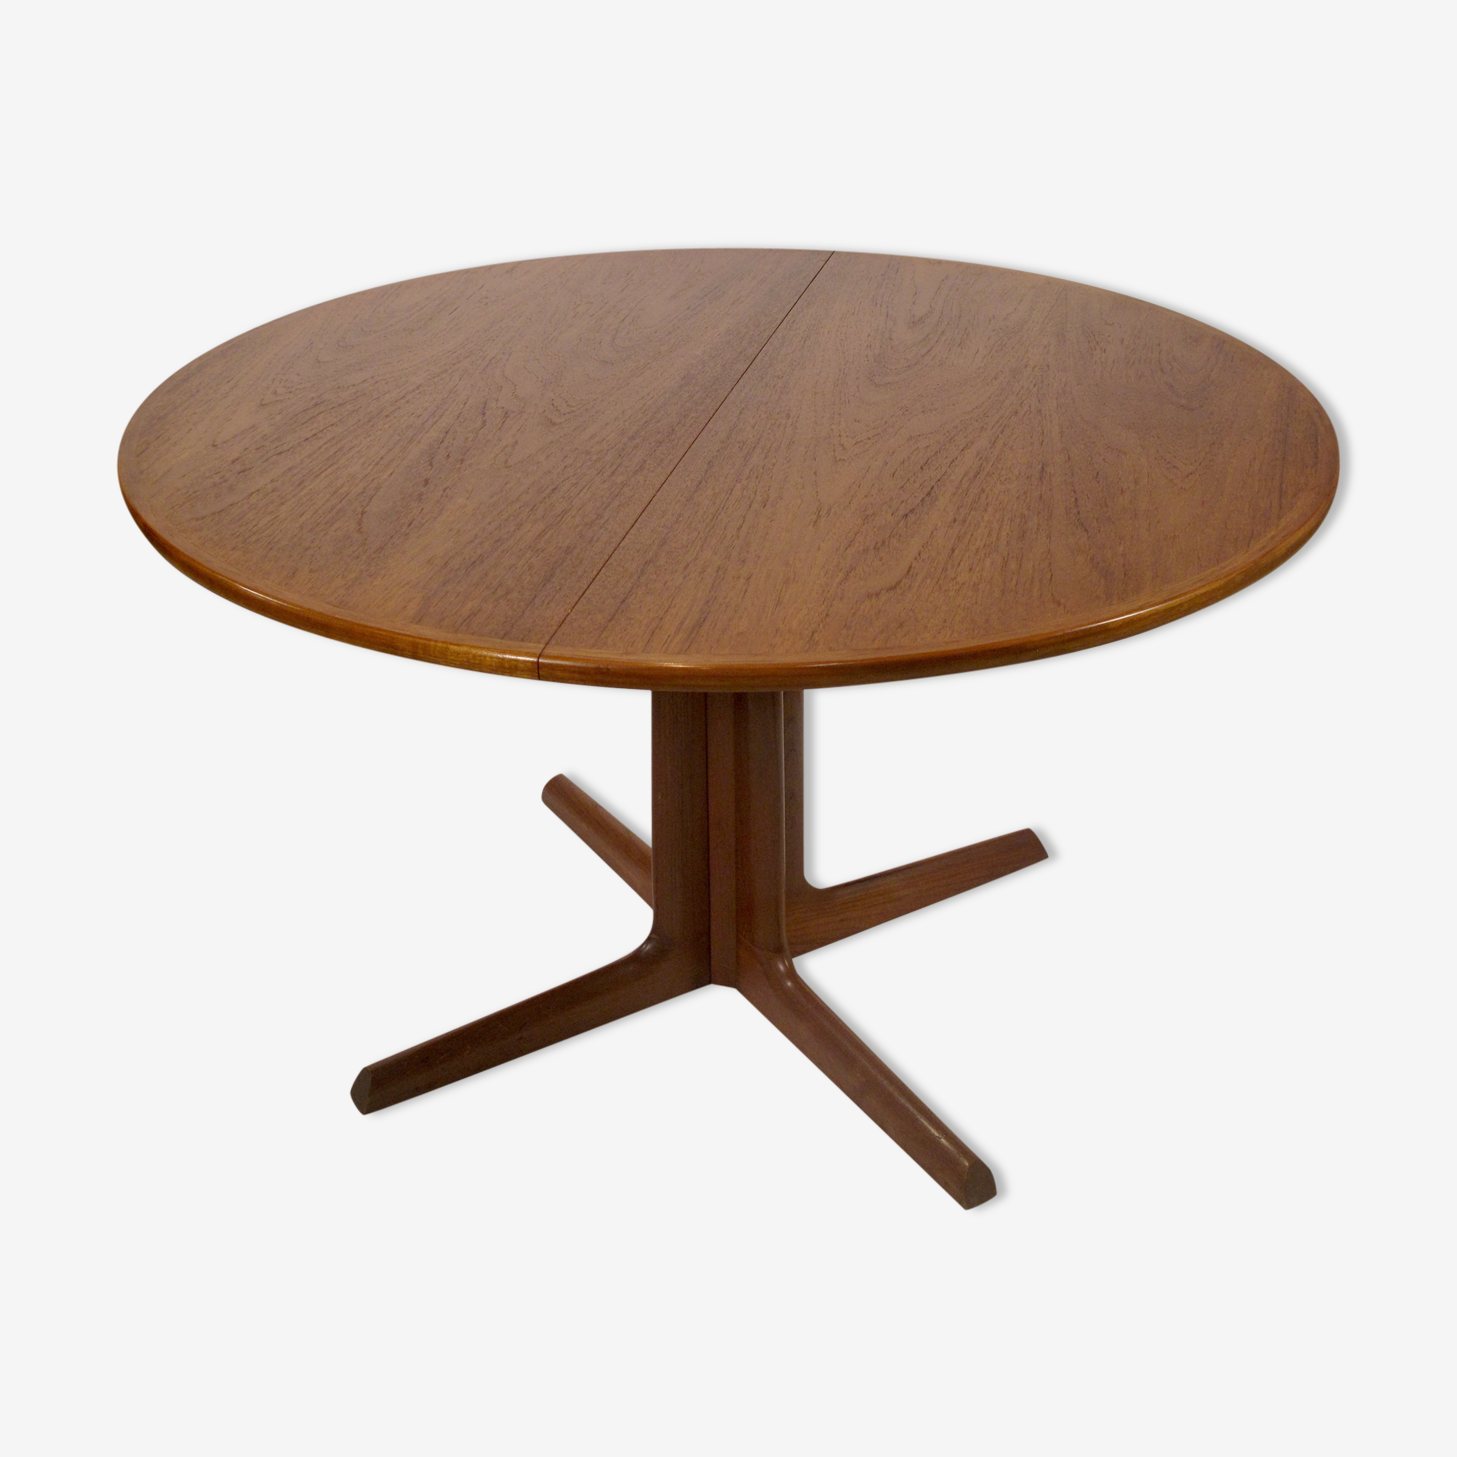 Dining table by Niels Otto Moller, Denmark 1960